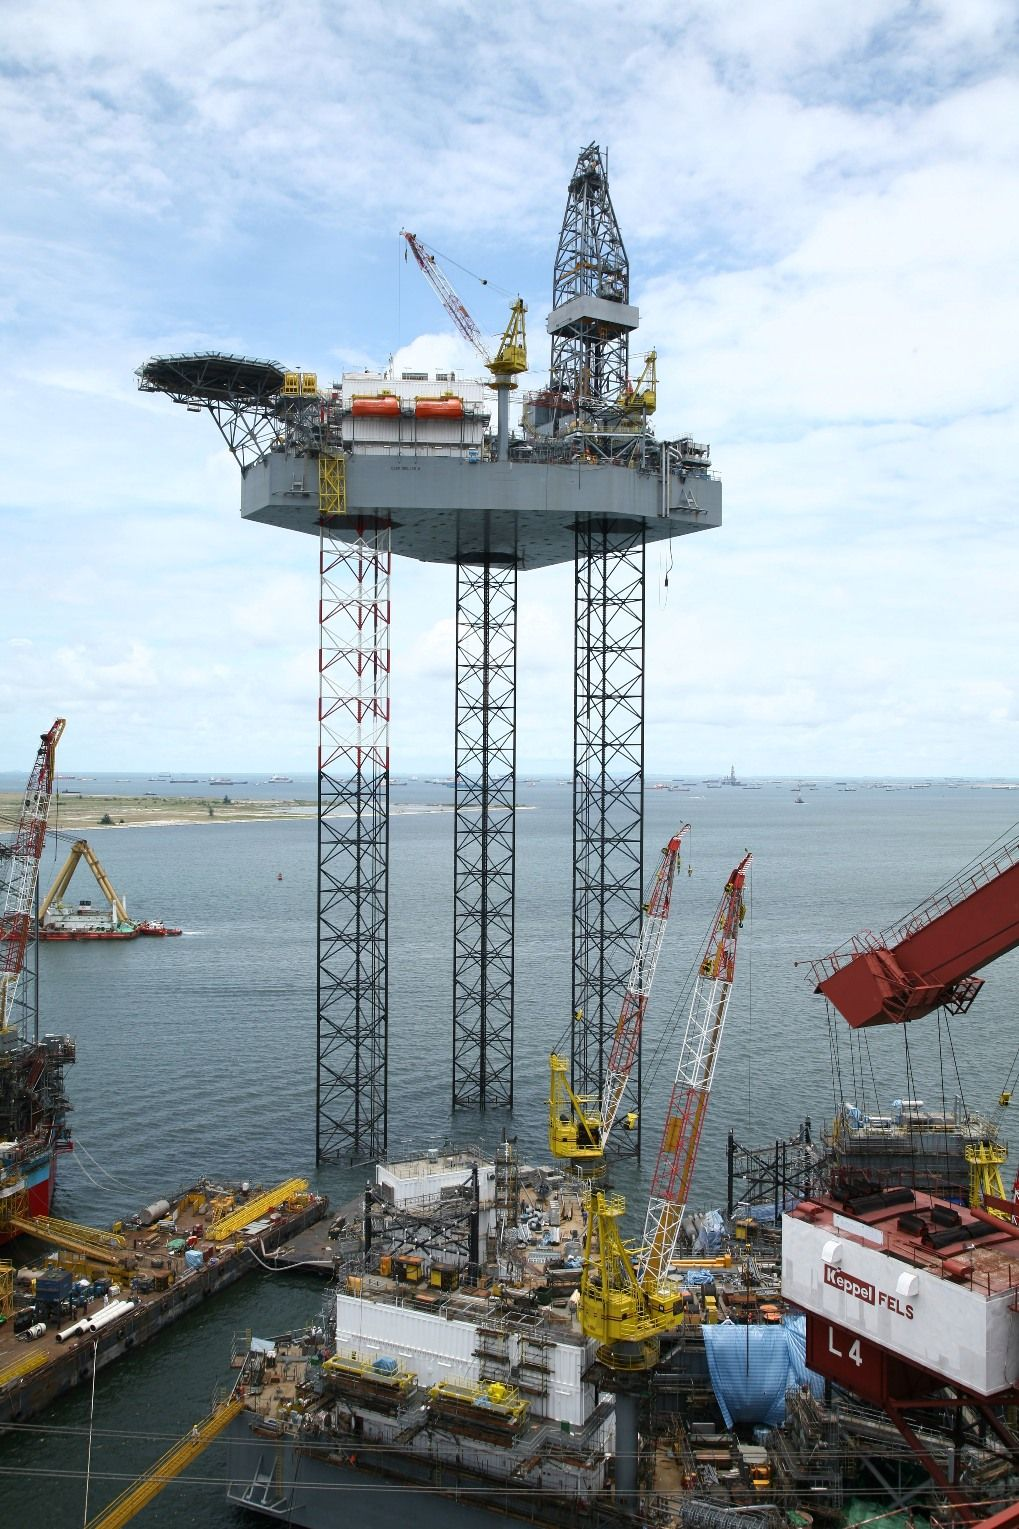 Testing A Jack Up Drilling Rig In The Yard Drilling Rig Oil Rig Jobs Oil Platform